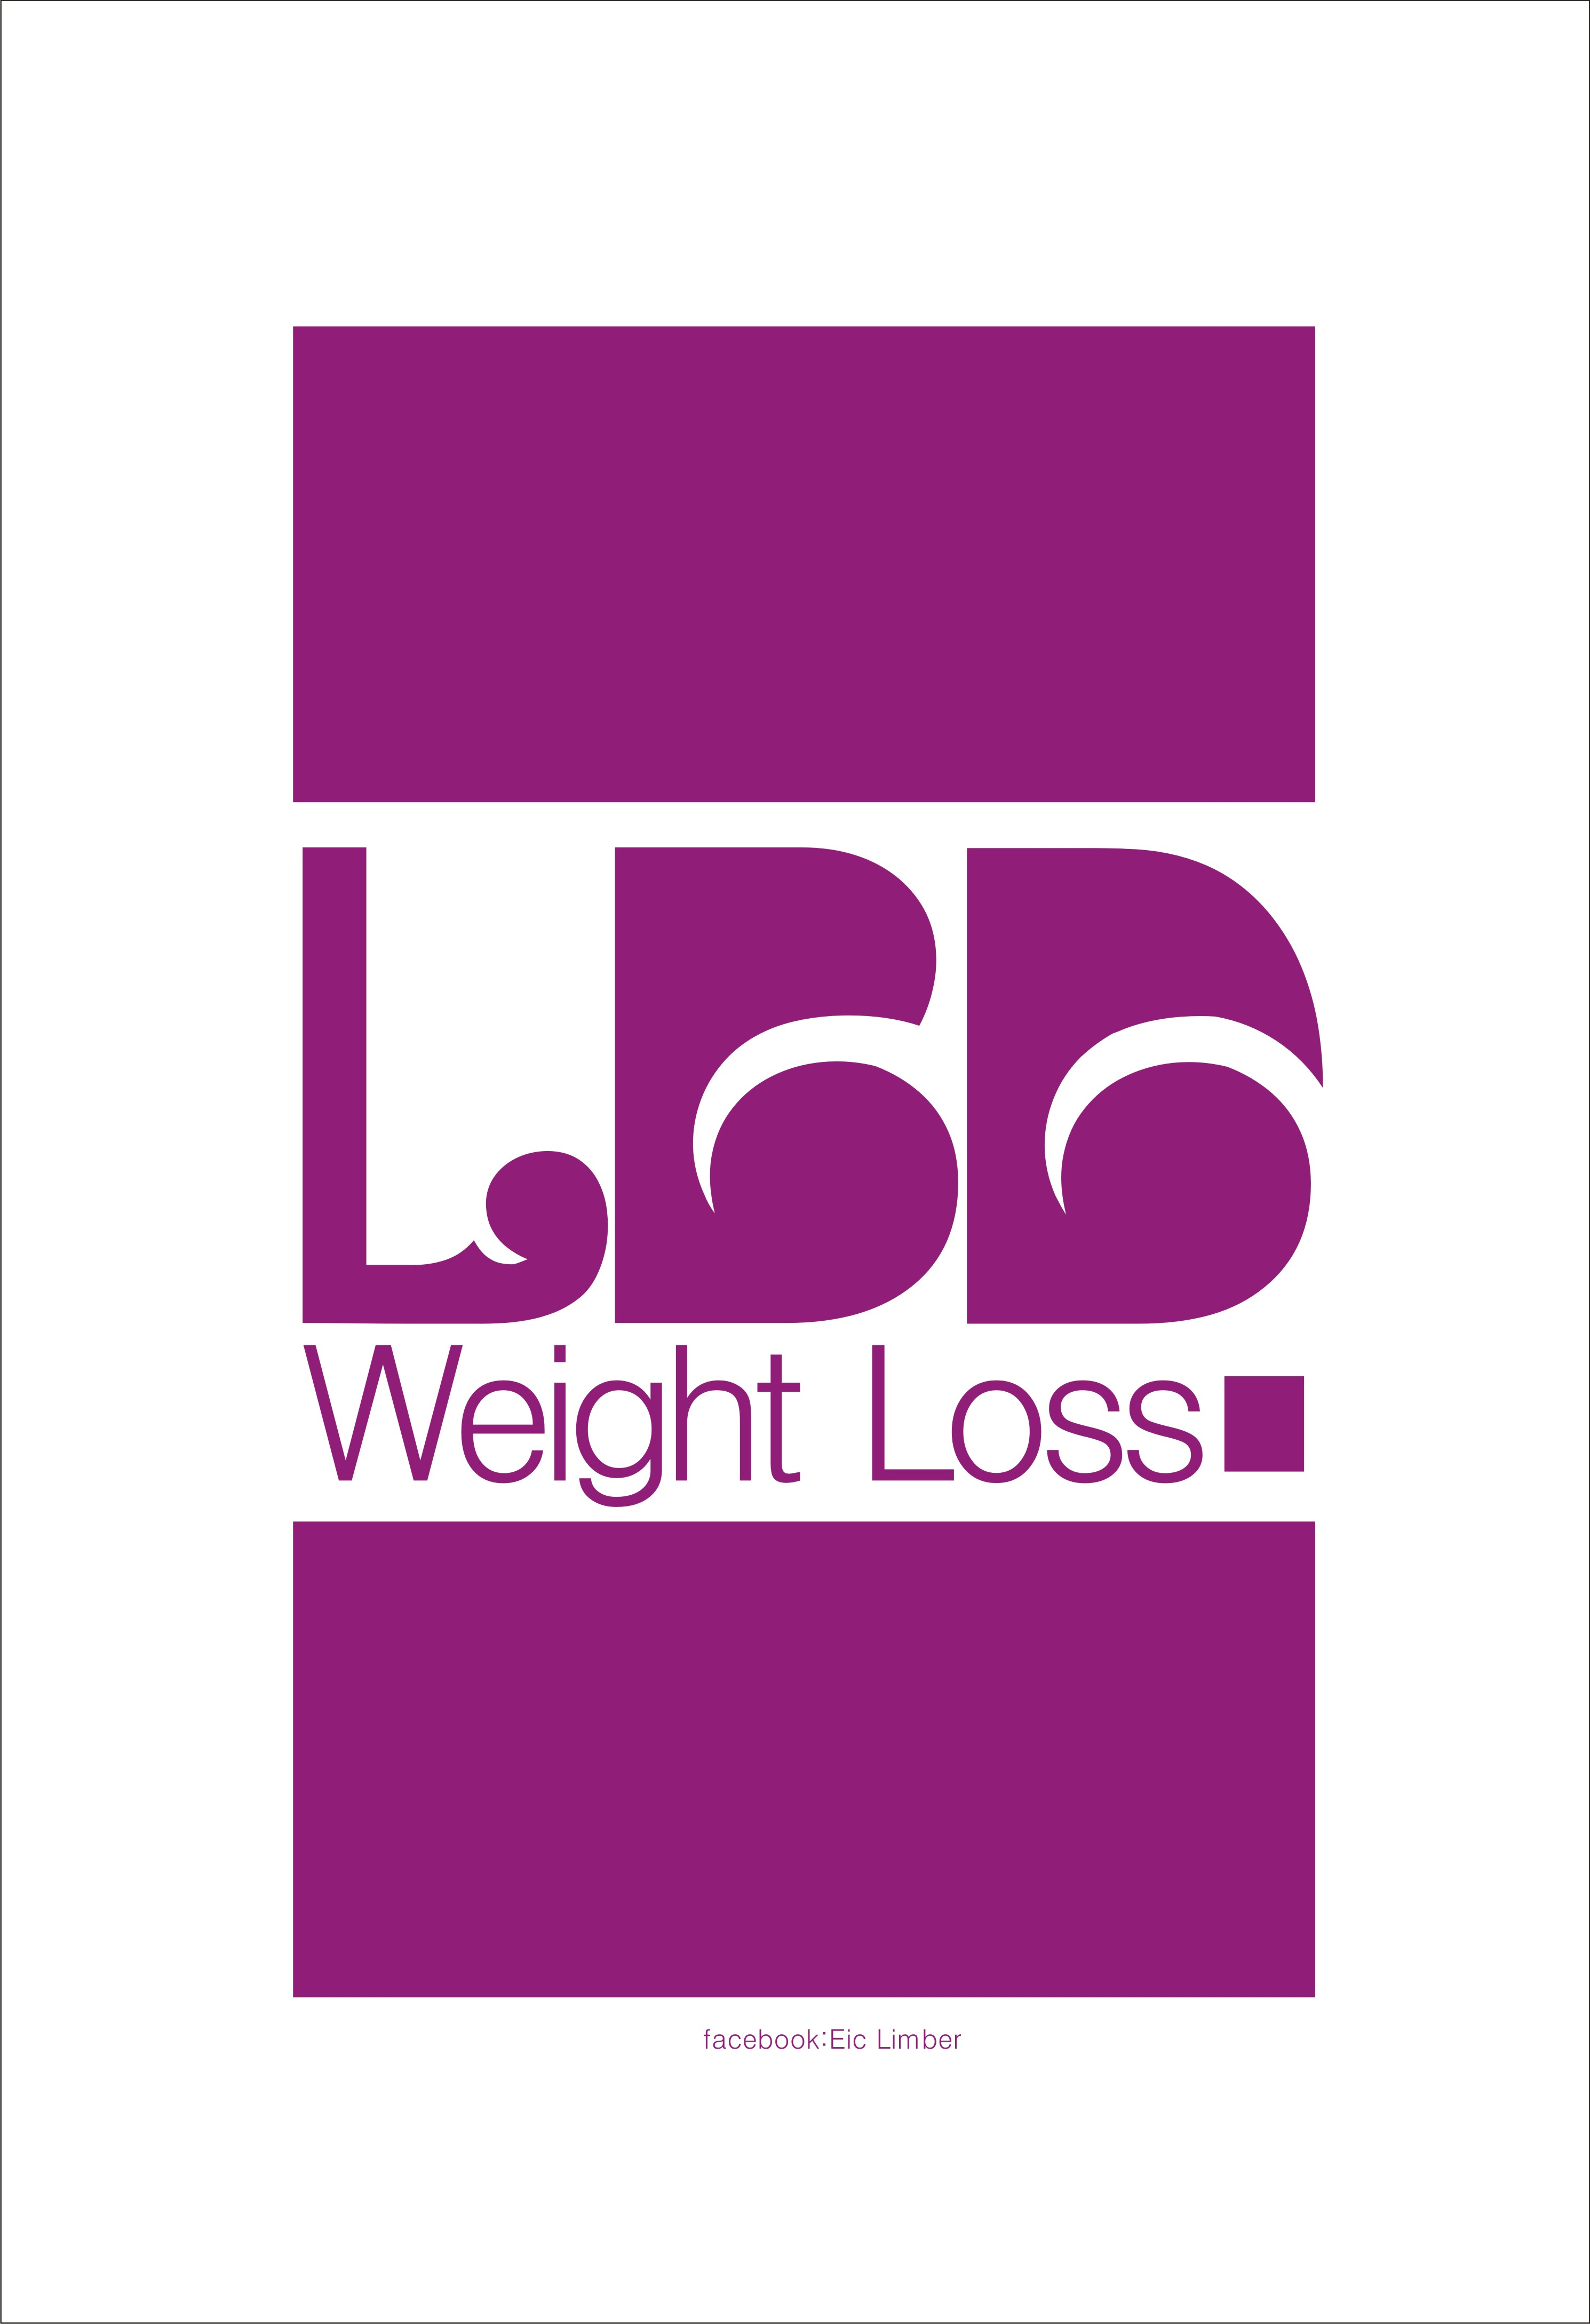 Logo Design by Eic Limber - Entry No. 49 in the Logo Design Contest Imaginative Logo Design for LBD Weight Loss.